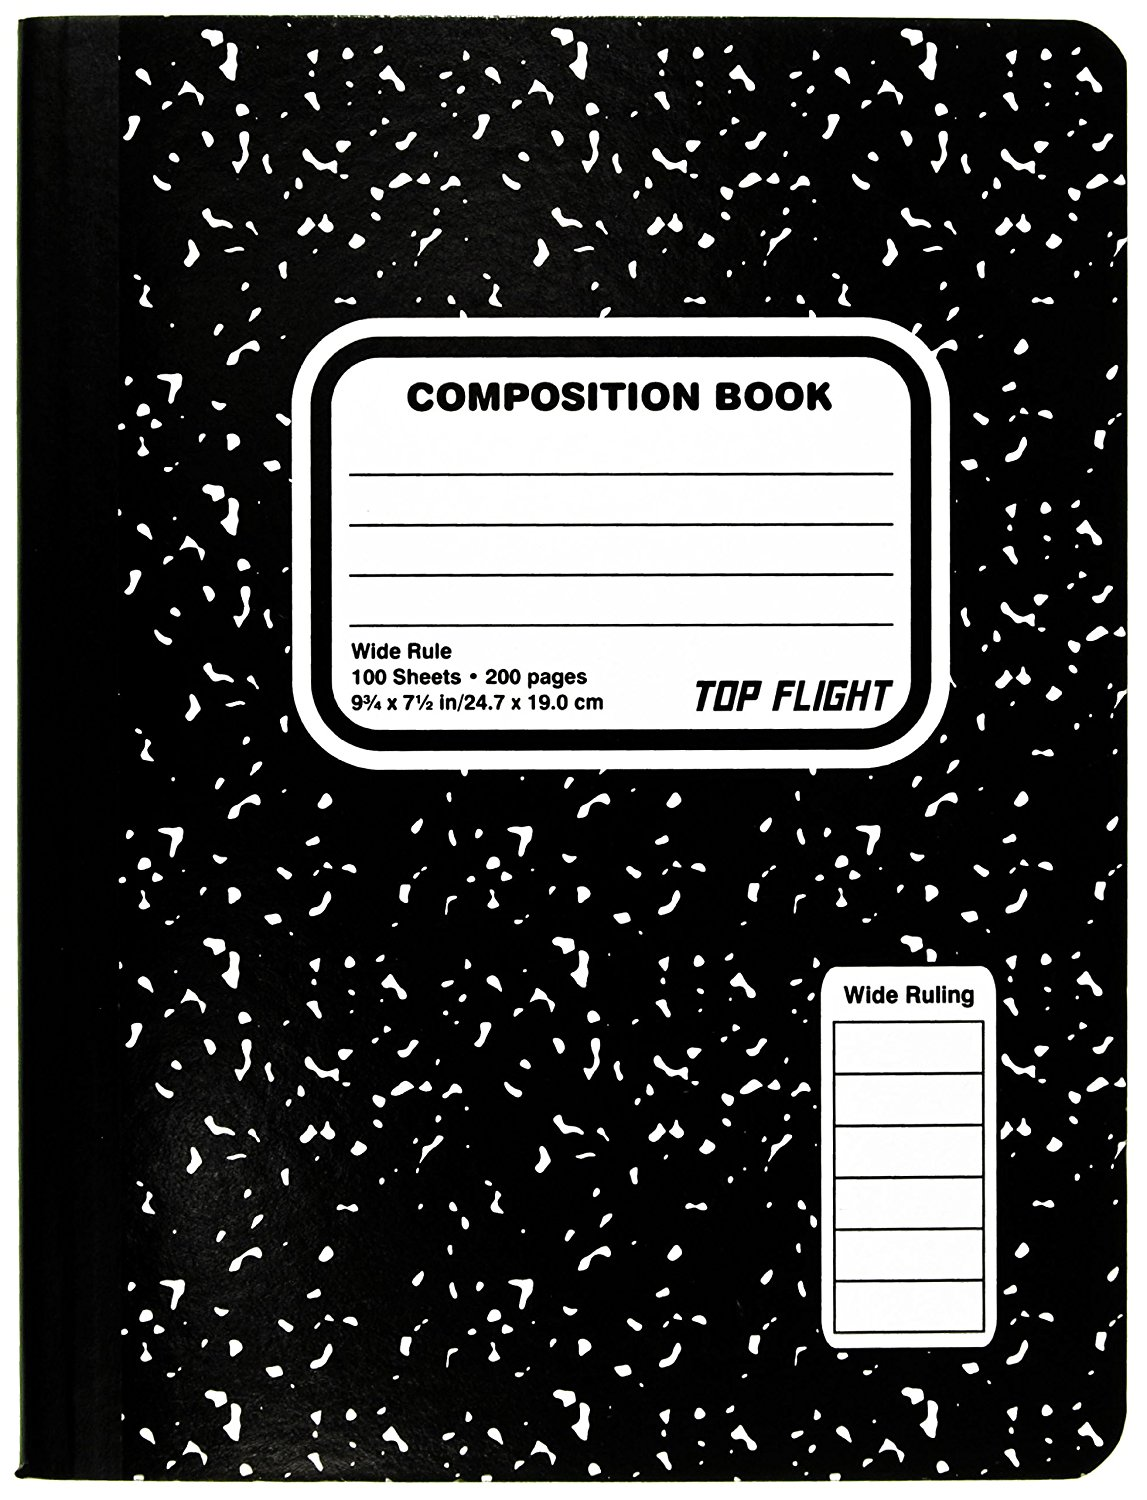 Top Flight Sewn Composition Book